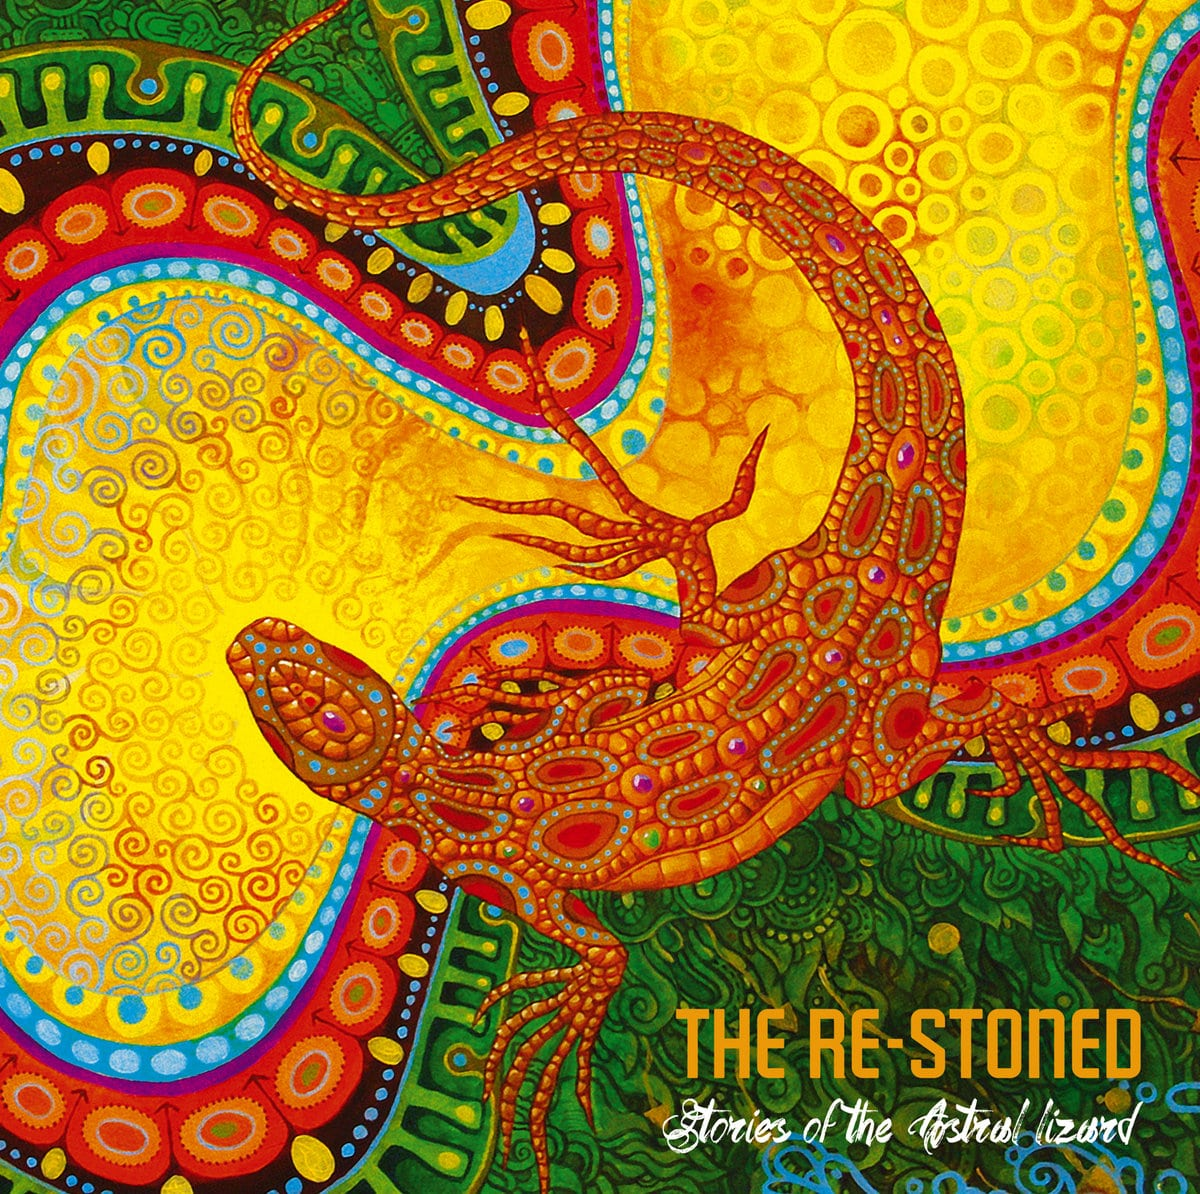 The Re-Stoned – Stories Of The Astral Lizard   Echoes And Dust